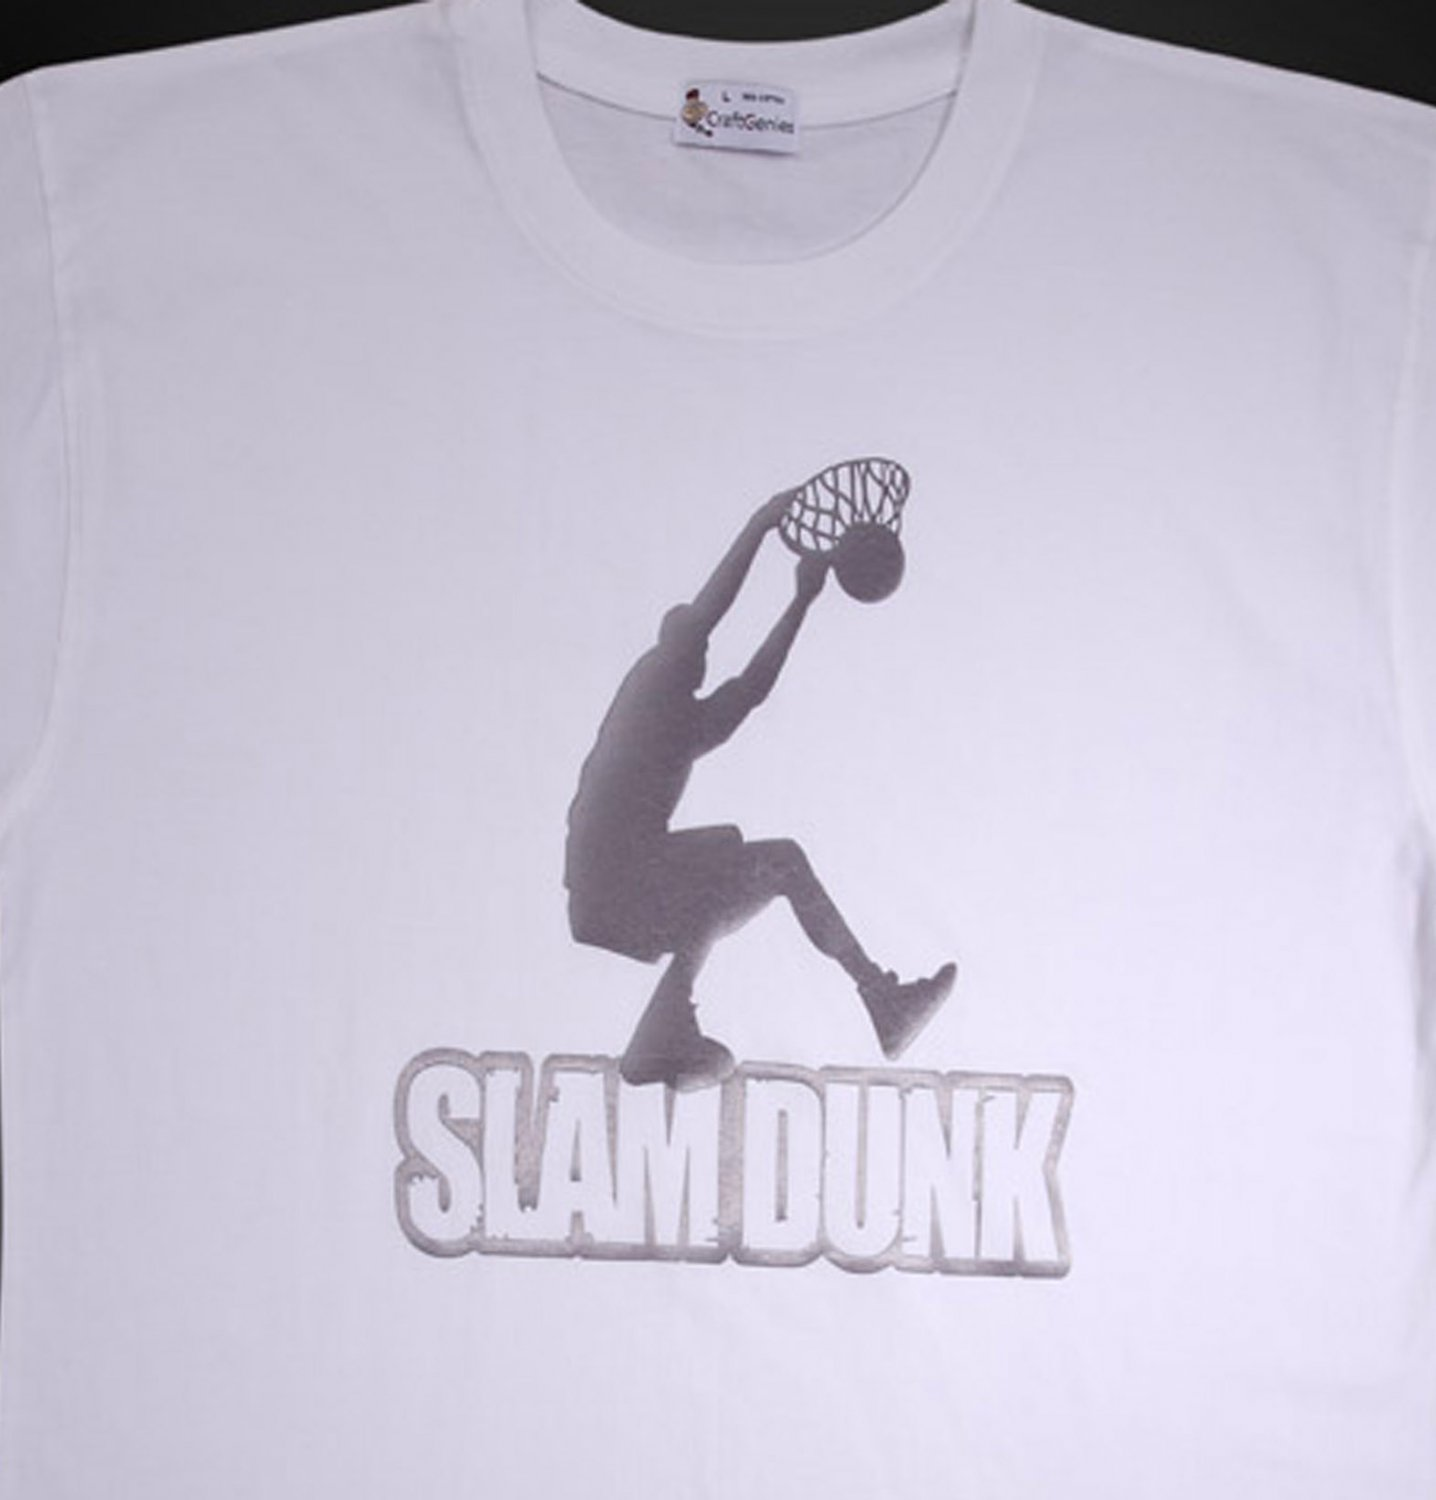 Dunk T Shirt For Sports Fans - Original, Never Opened  (Men's Medium)